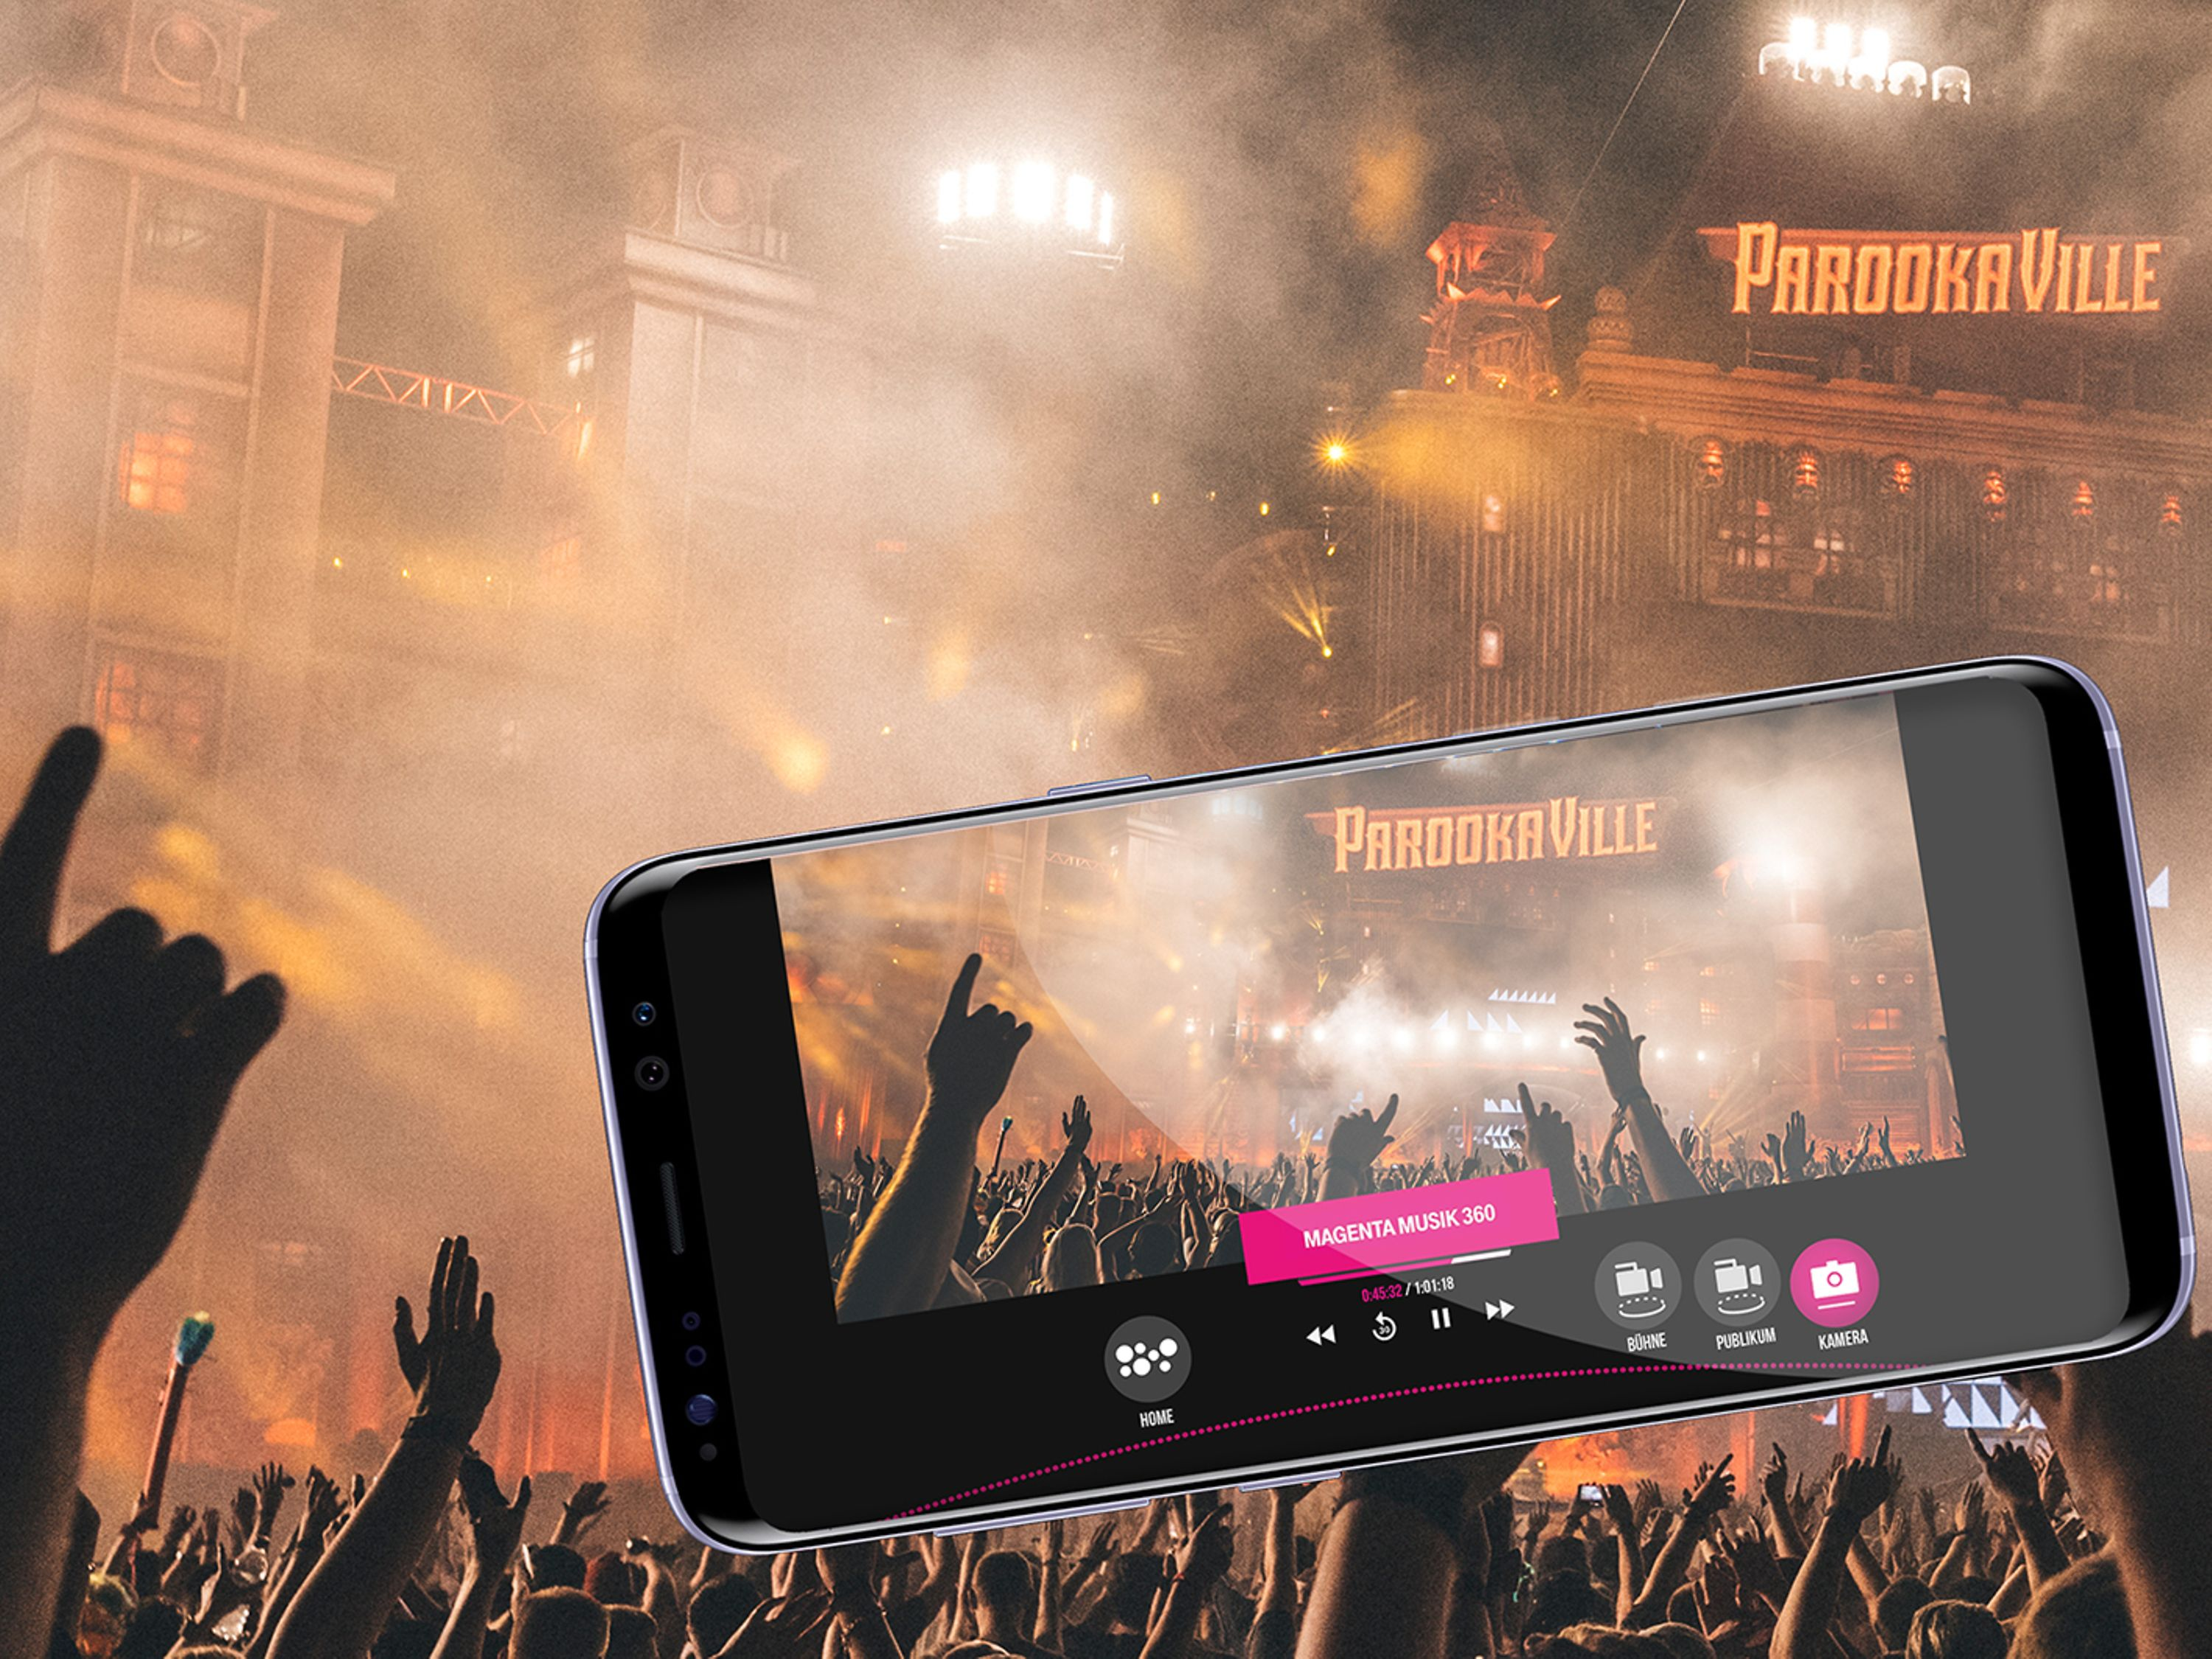 MagentaMusik 360 will broadcast exclusive sets from top DJs at Parookaville in live stream and 360°.